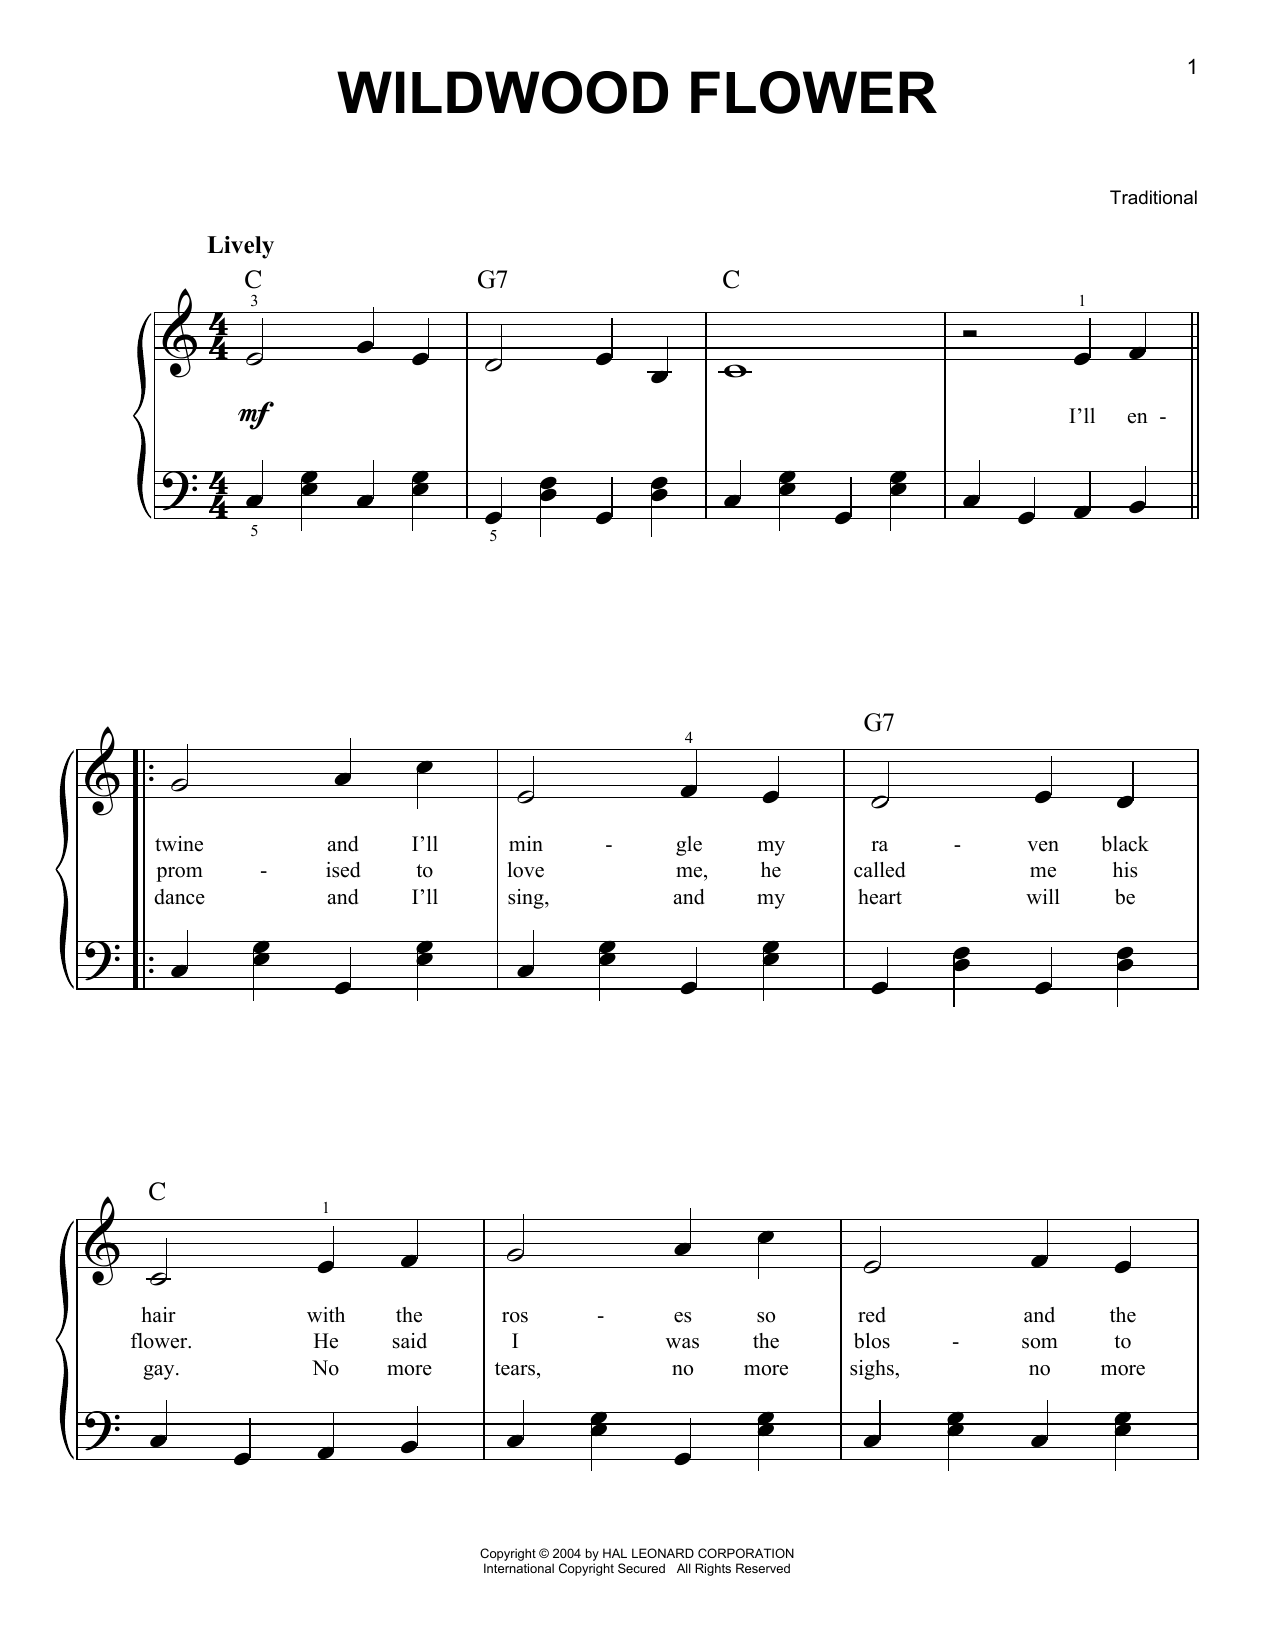 Traditional Wildwood Flower sheet music notes and chords. Download Printable PDF.